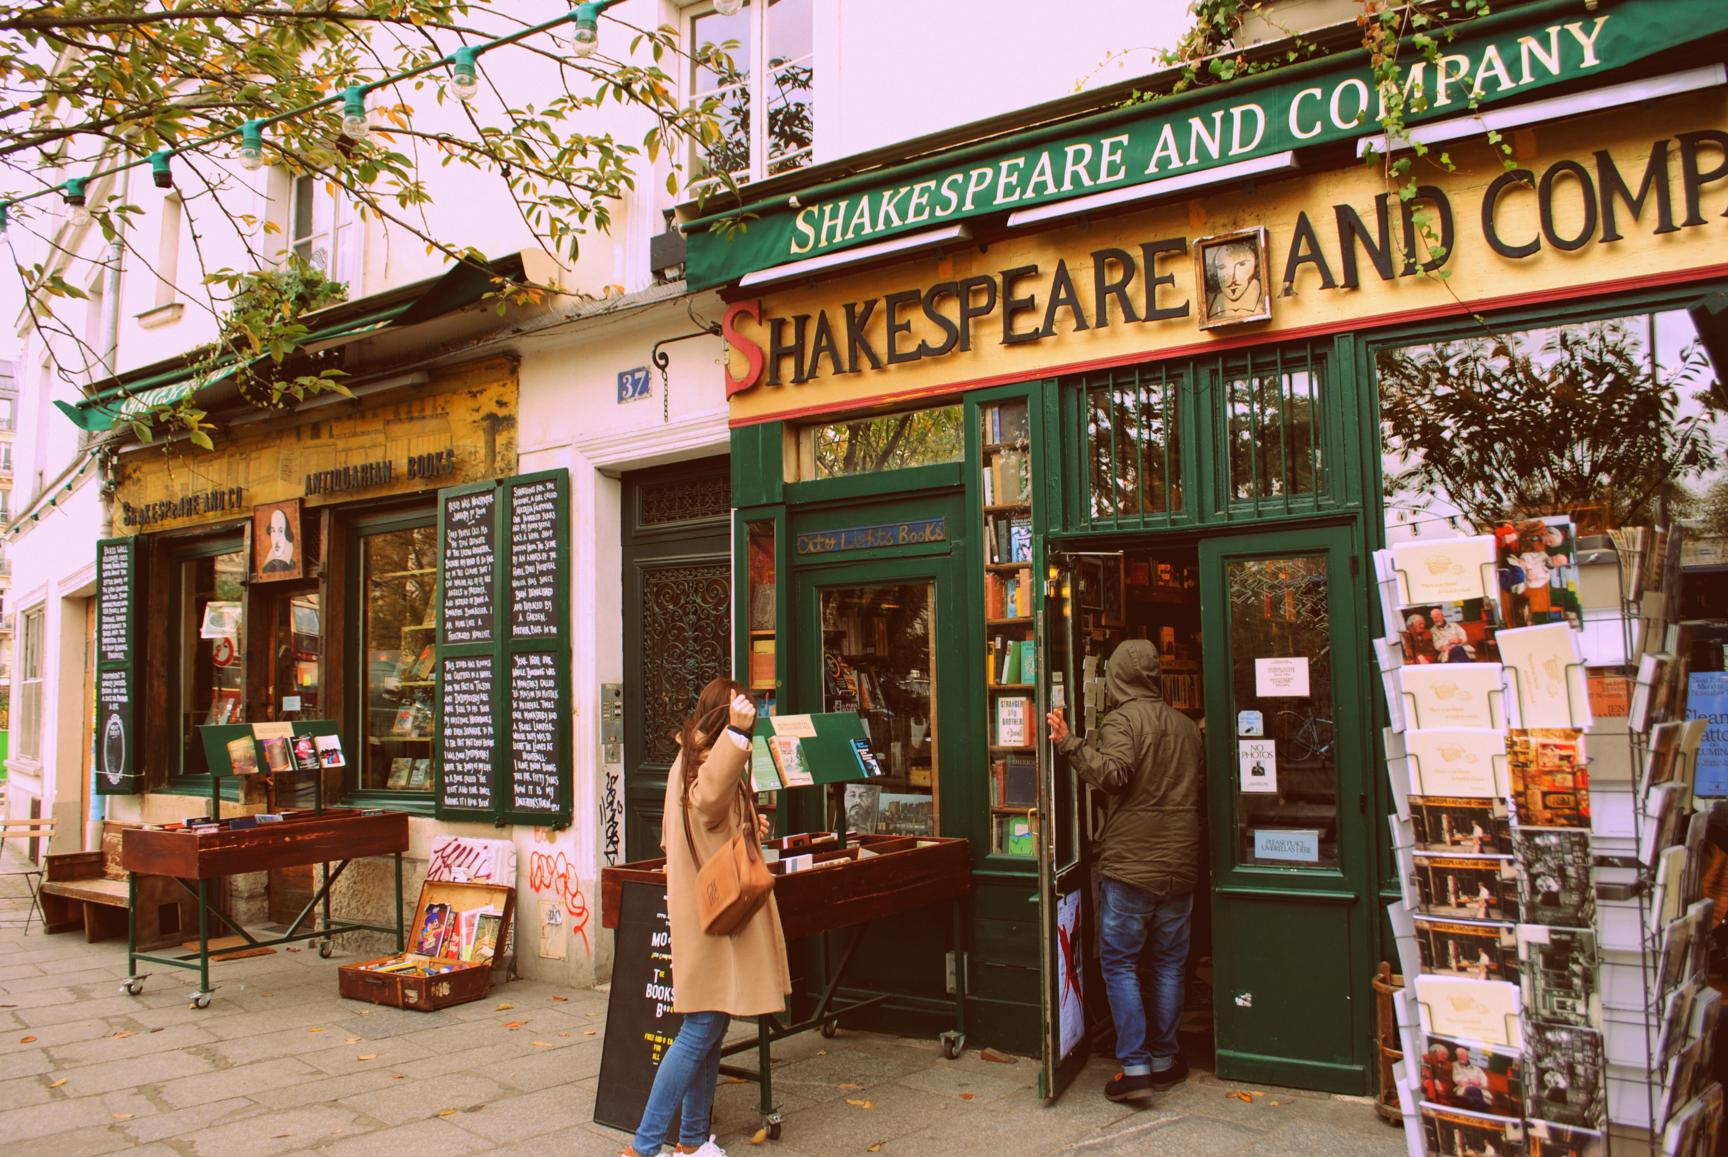 paris-libreria-shakespeare-company